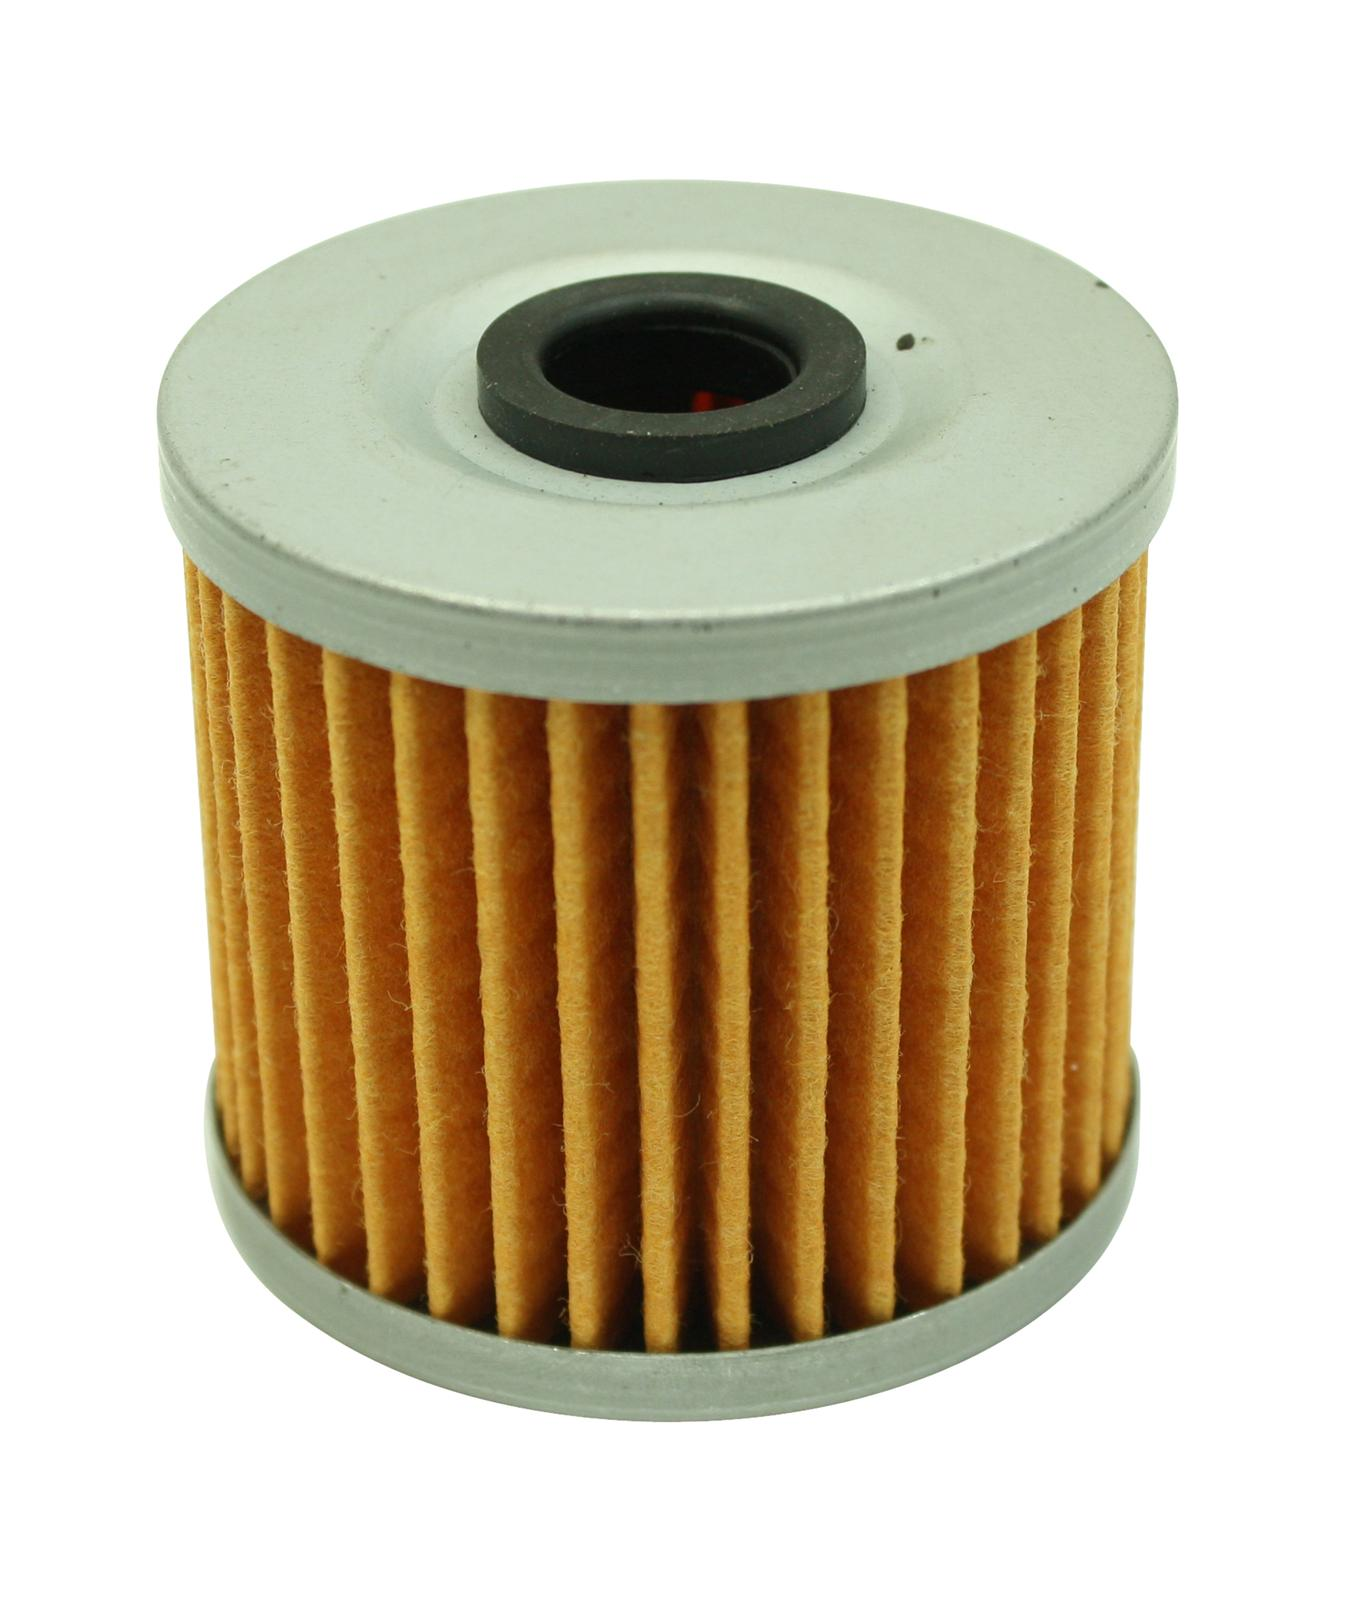 hight resolution of aem electronics replacement fuel filter elements 35 4006 free shipping on orders over 99 at summit racing